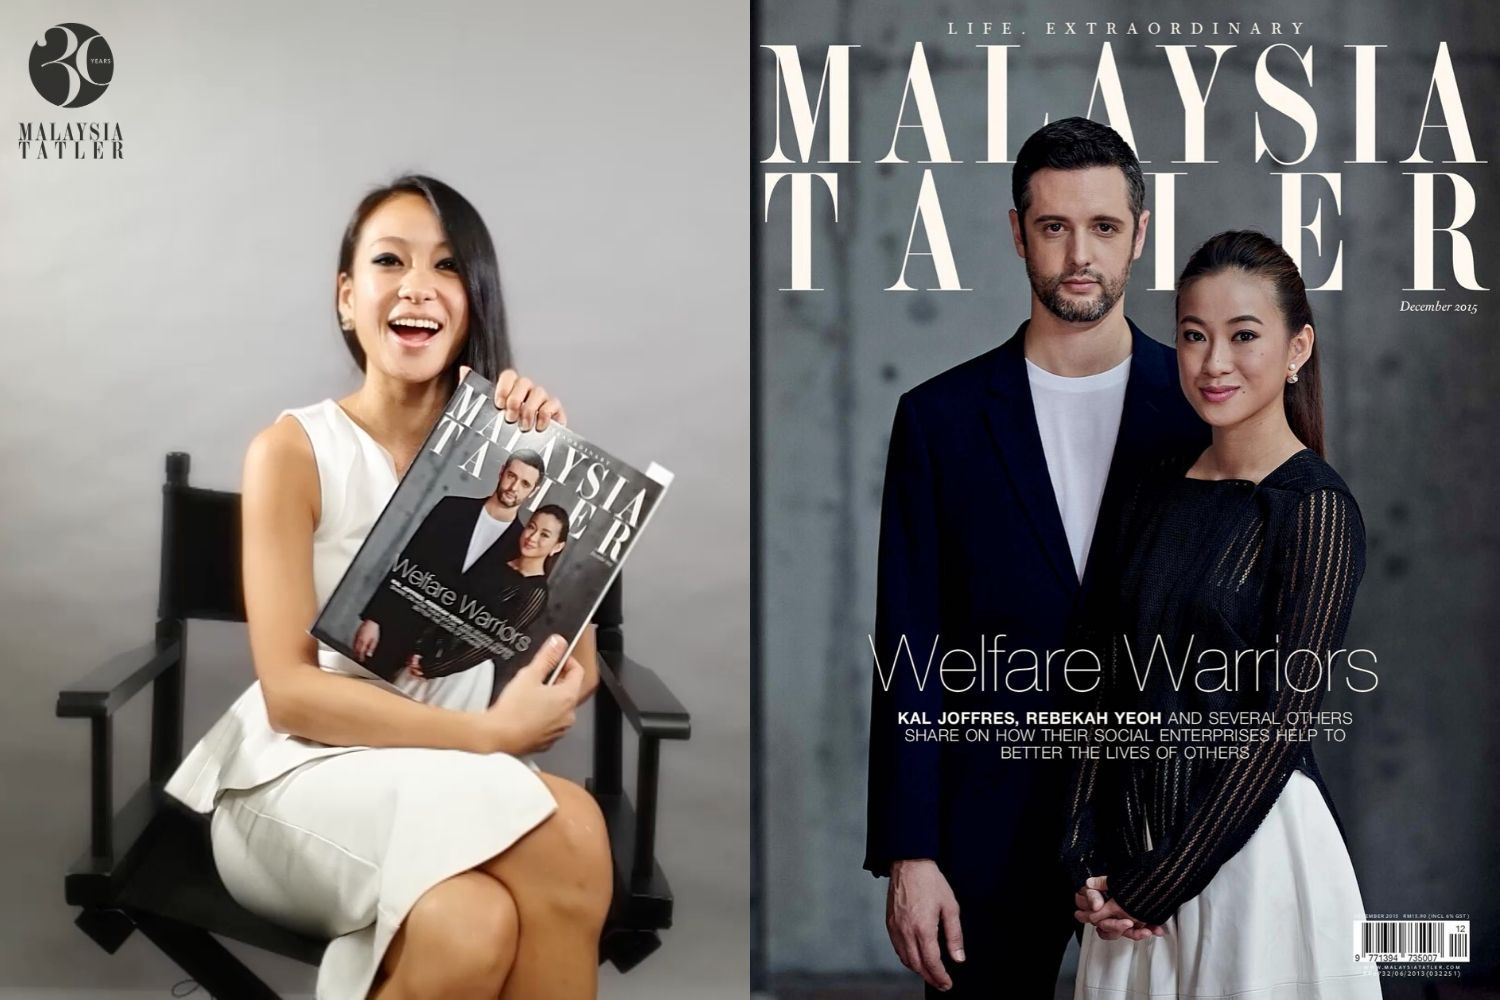 Watch: Rebekah Yeoh Looks Back On Her Past Cover